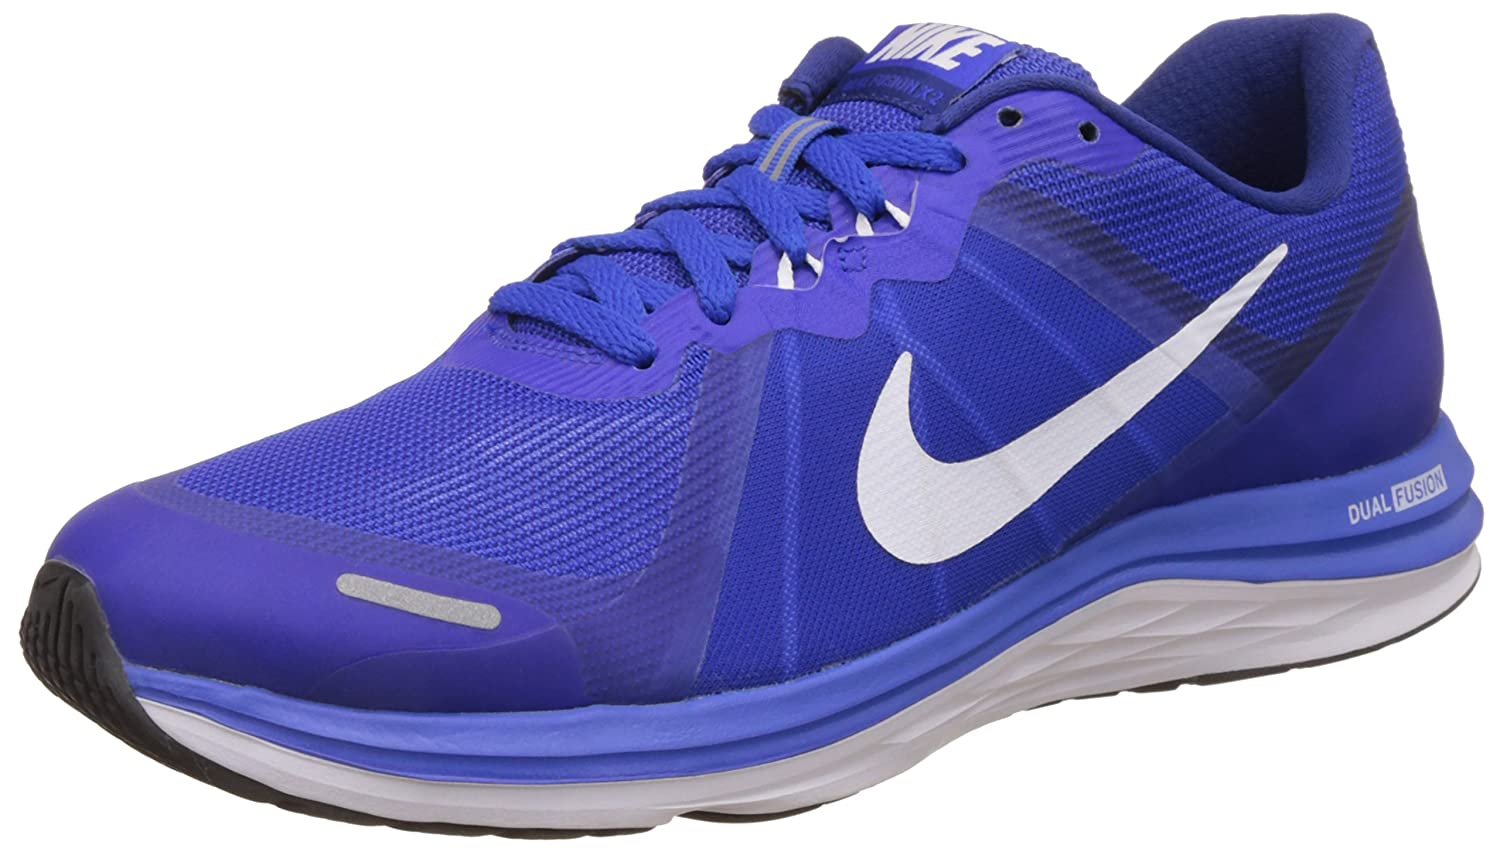 3e758f3862c Nike Men s Dual Fusion X 2 Blue Running Shoes - 6 UK India (40 EU)(7 US)   Buy Online at Low Prices in India - Amazon.in